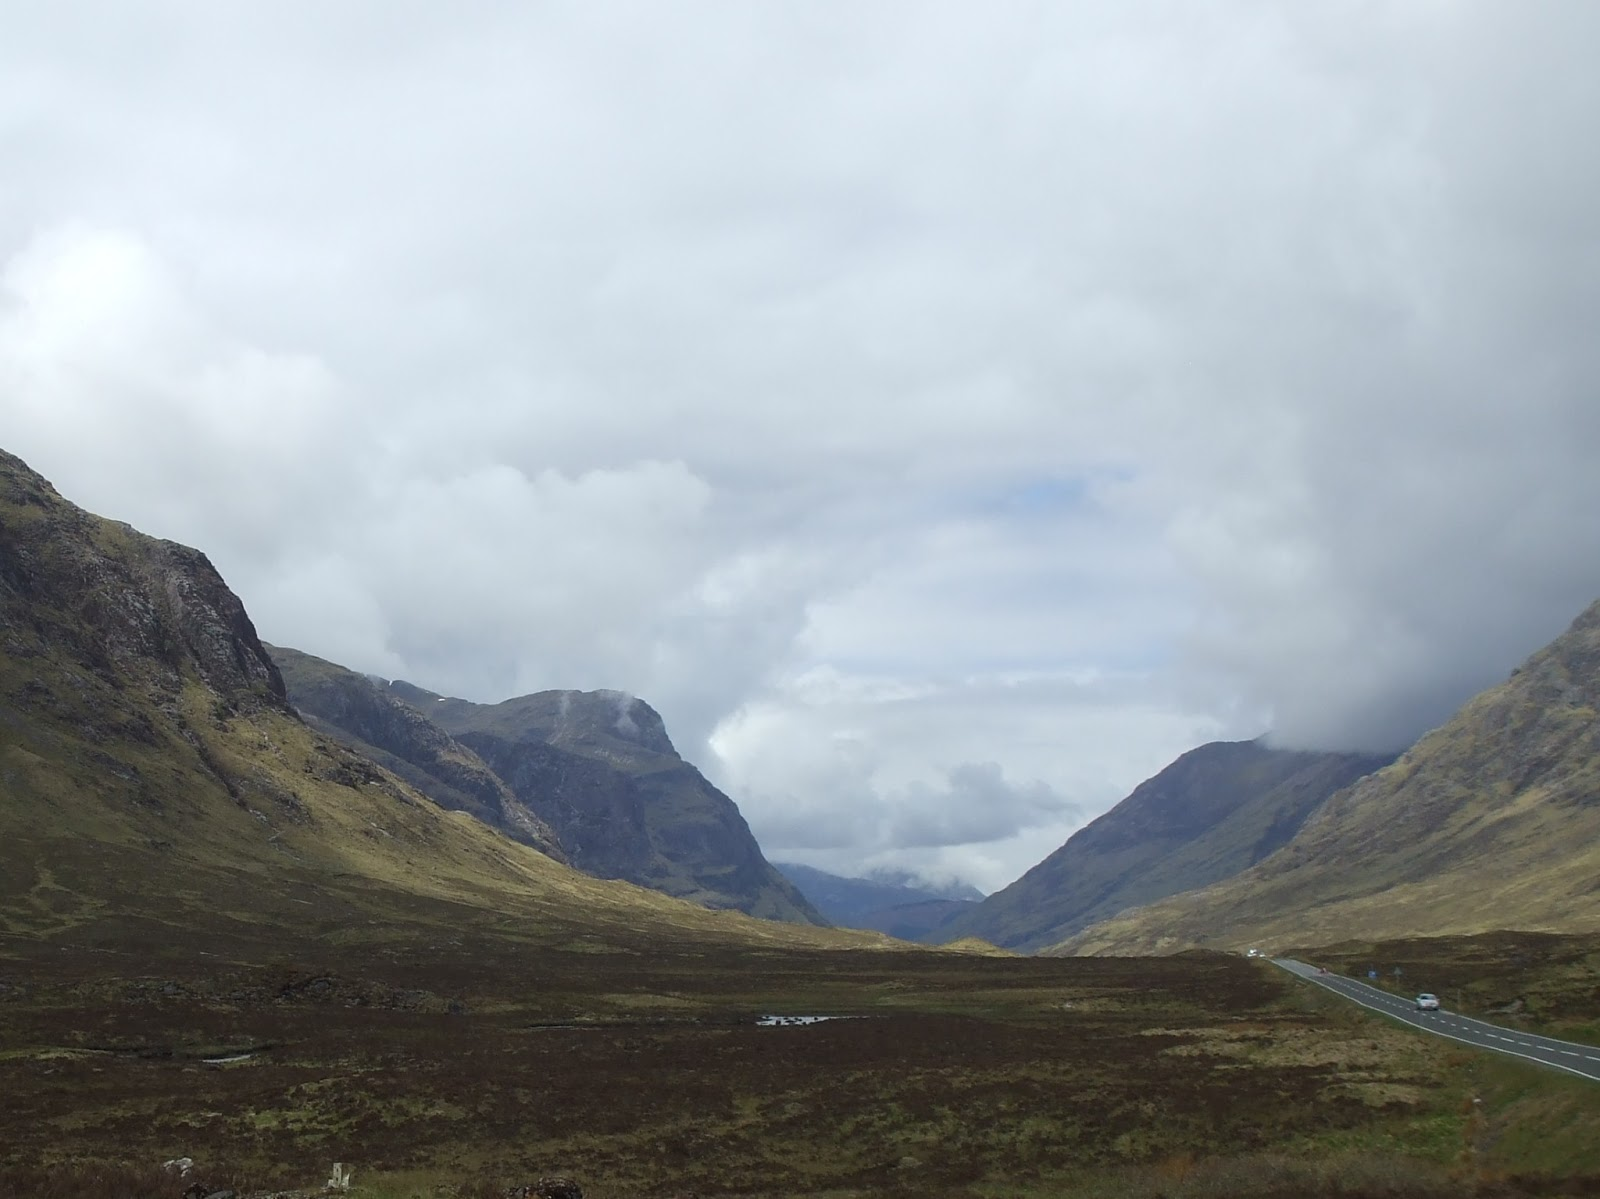 glencoe june 2013 by seapenguin